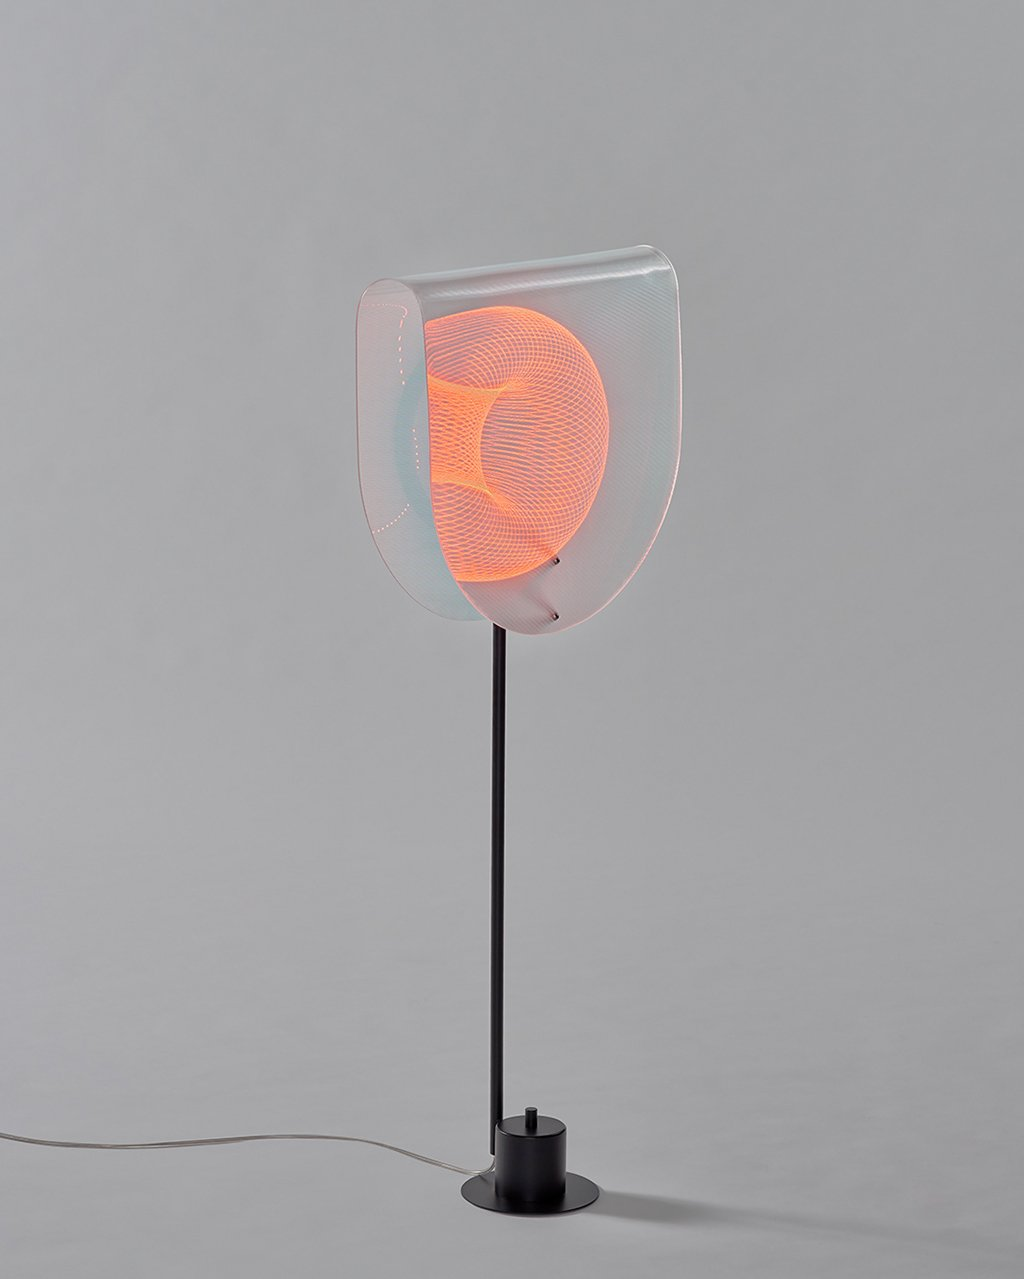 Every Torus Light 2 by Arnout Meijer Studio